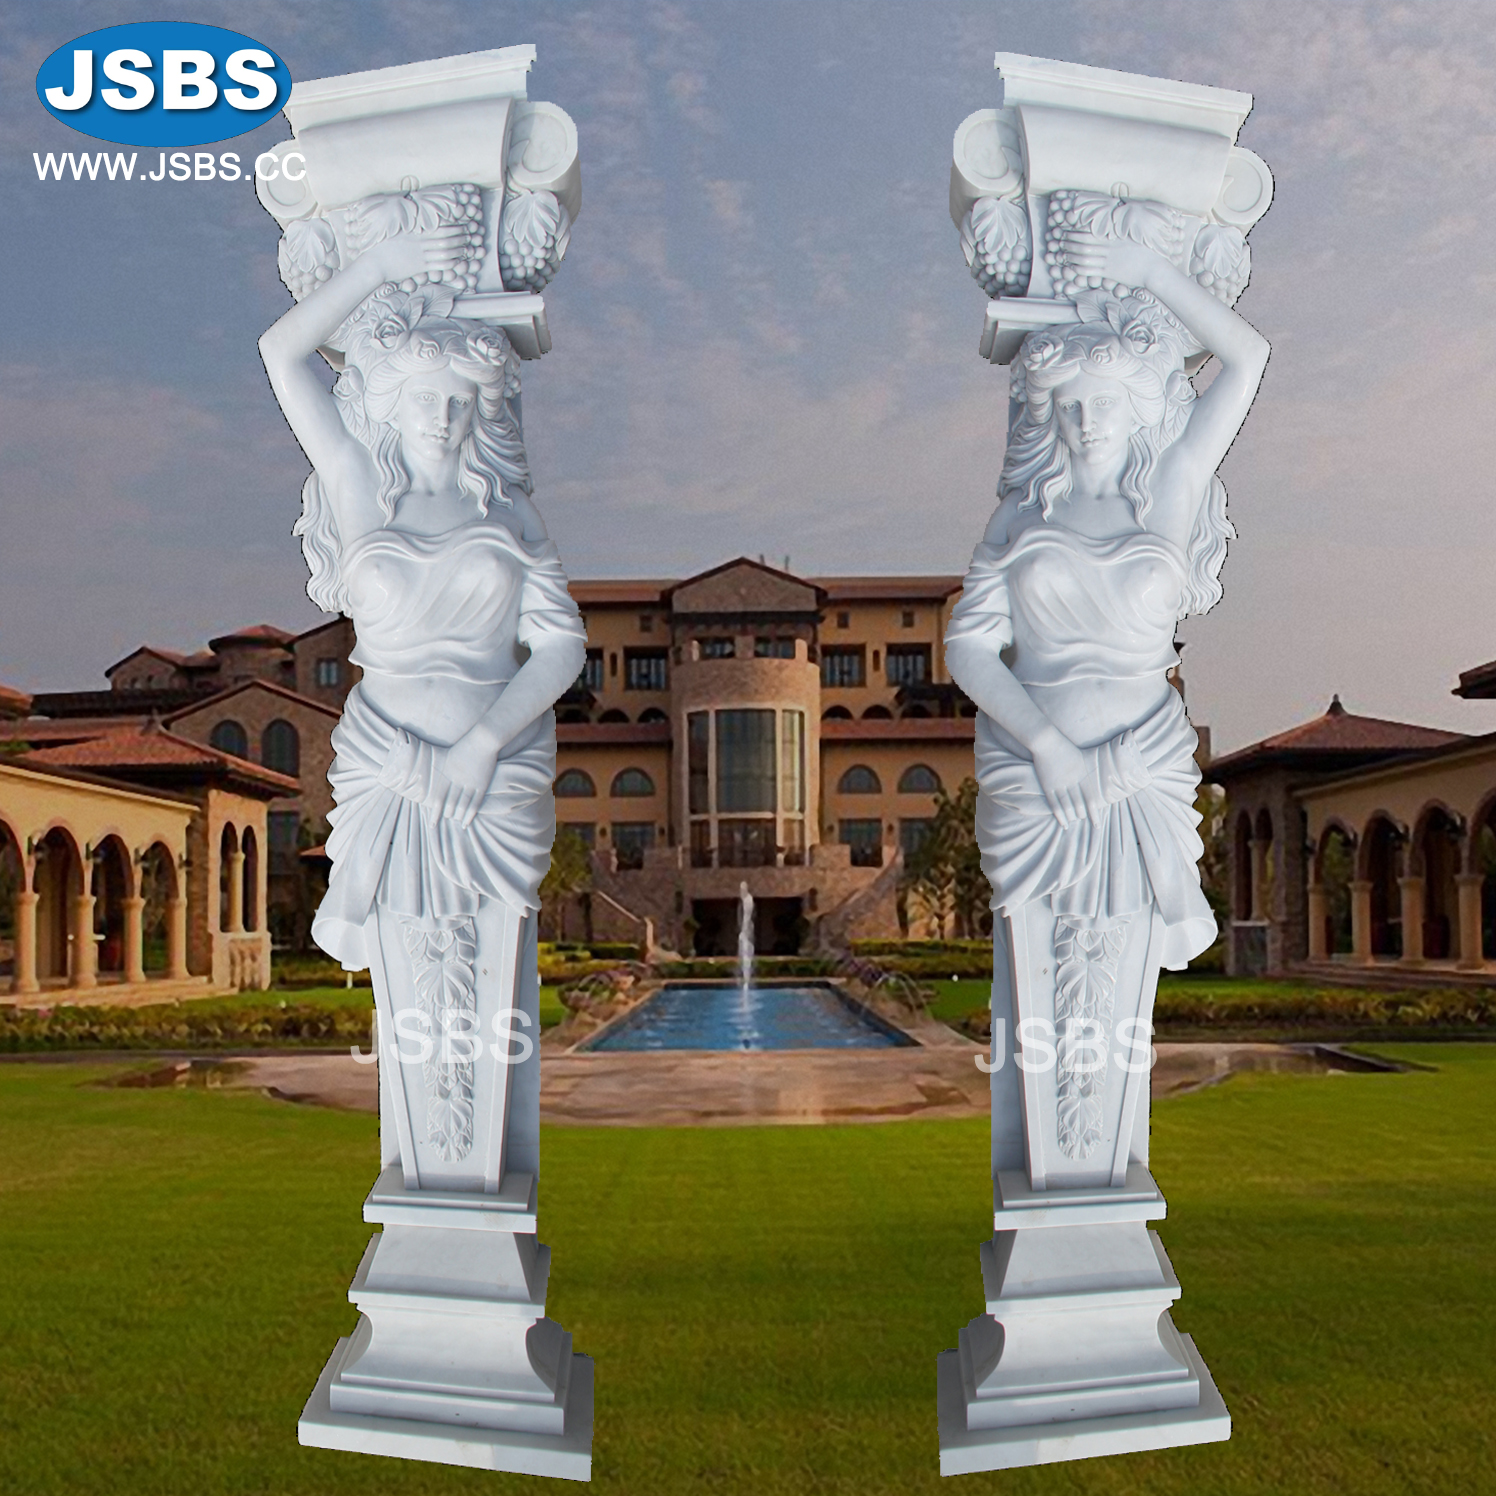 Low Price Home Decor: High Quality Low Price Home Decor Interior Stone Columns